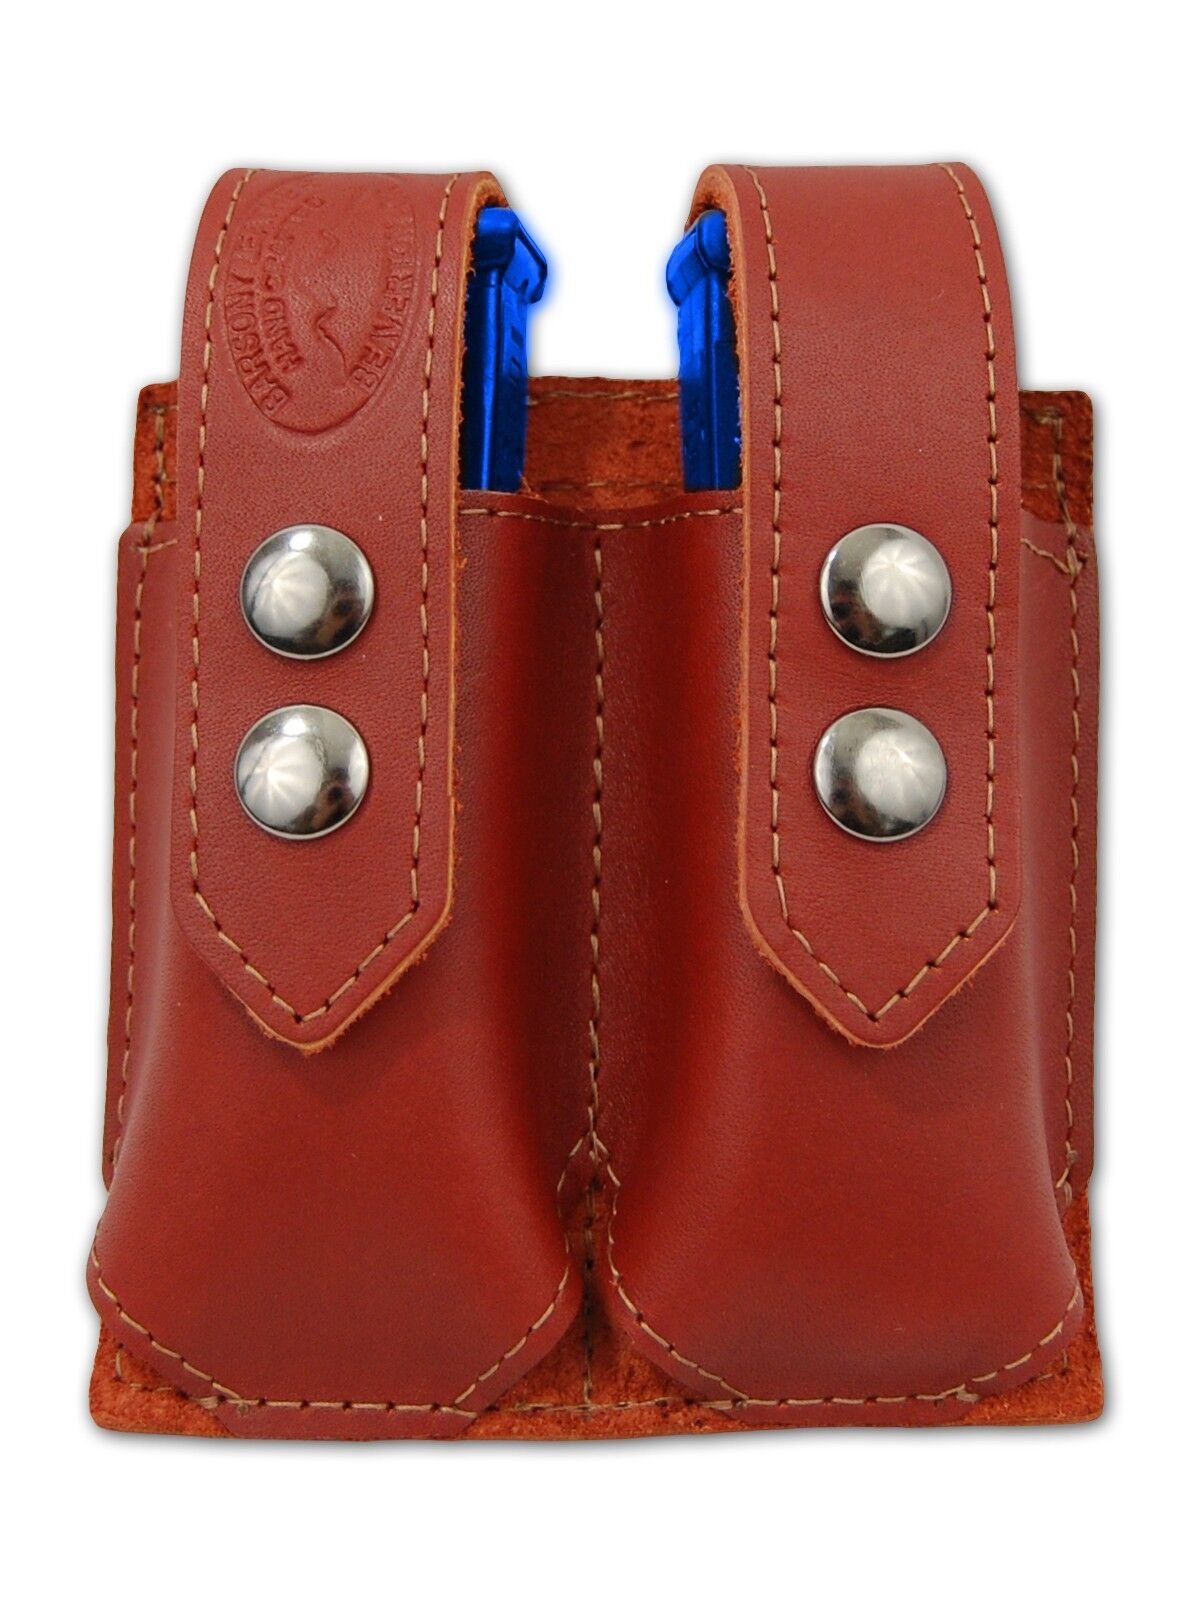 NEW Barsony Burgundy Leather Double Mag Pouch Beretta Kahr 380 & Ultra Compact